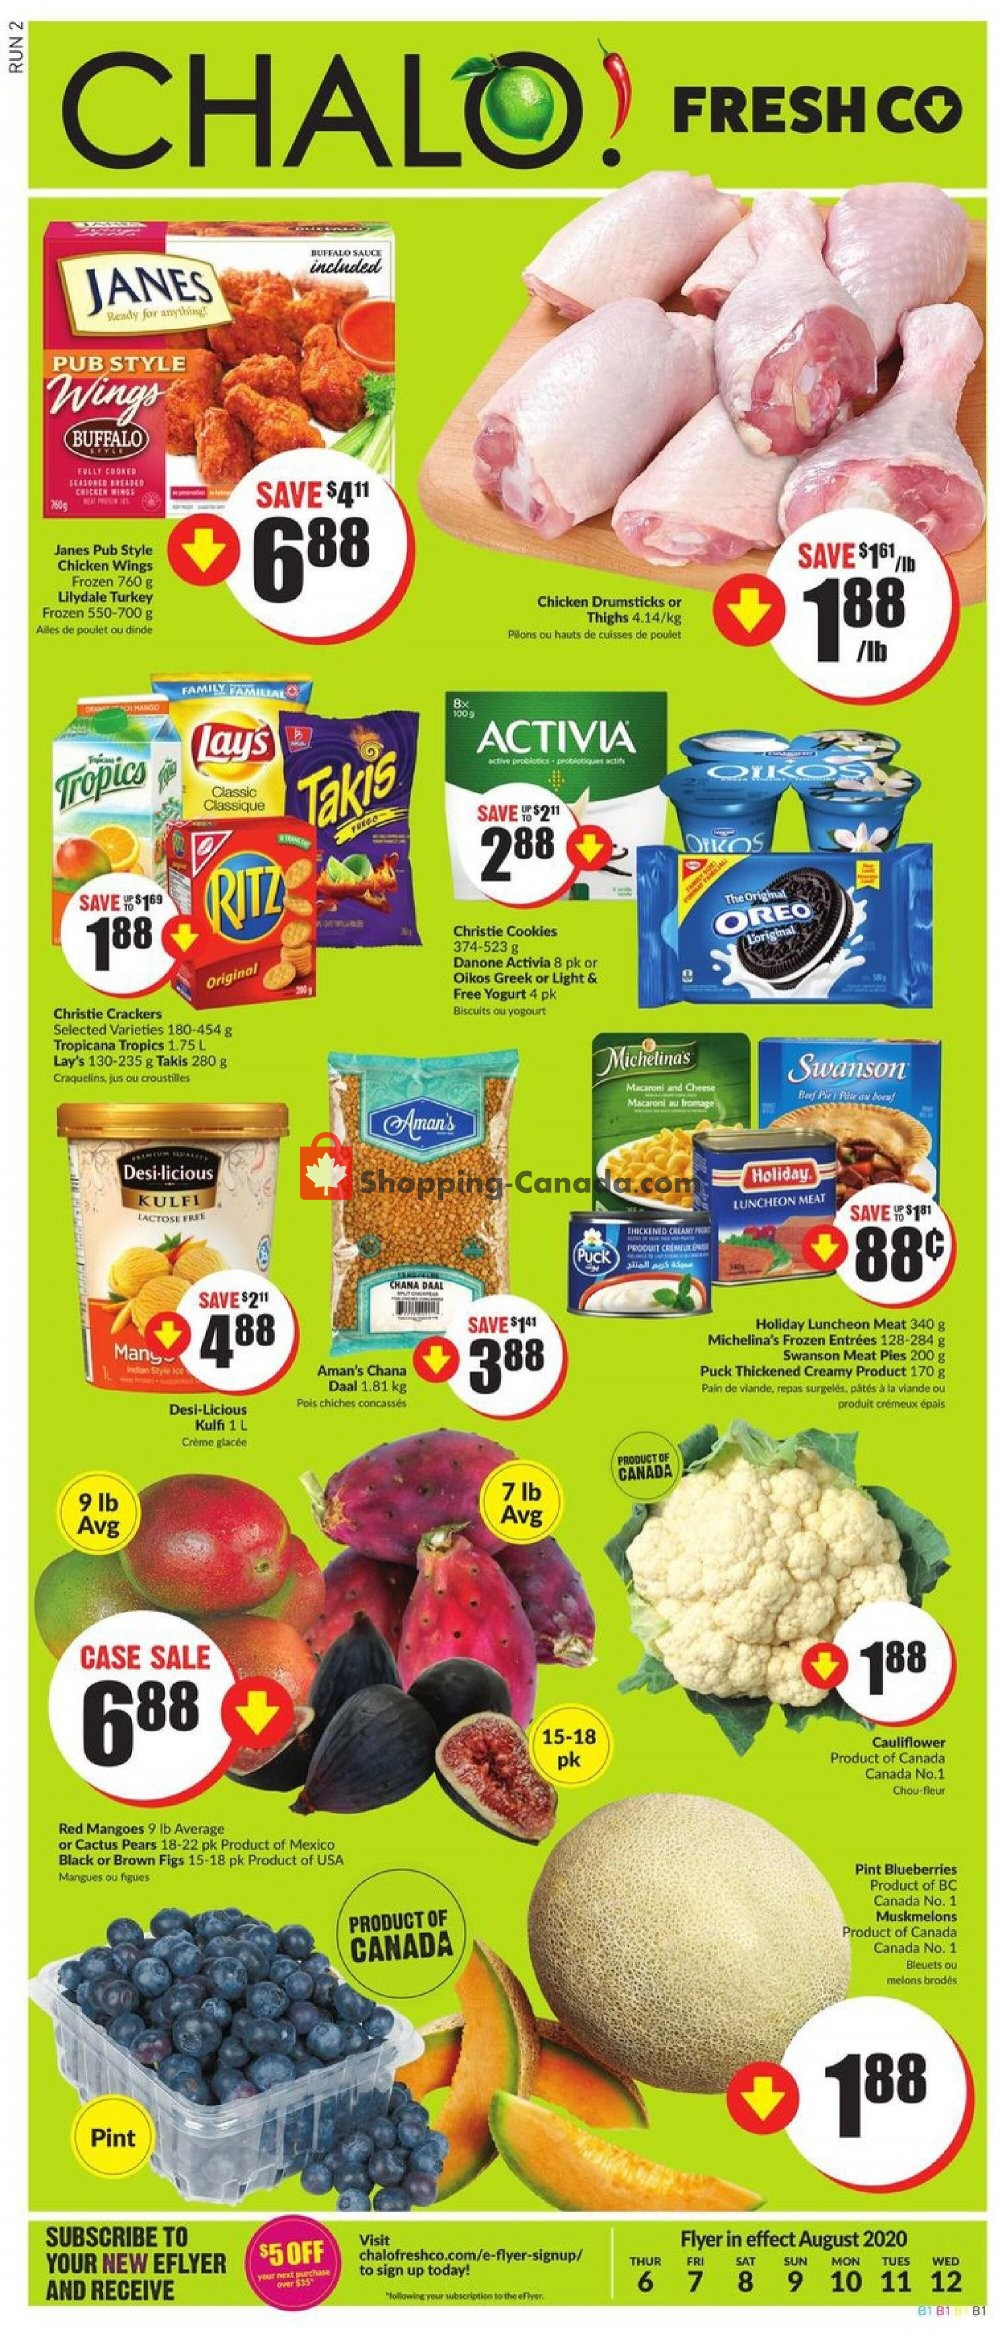 Flyer Chalo FreshCo Canada - from Thursday August 6, 2020 to Wednesday August 12, 2020